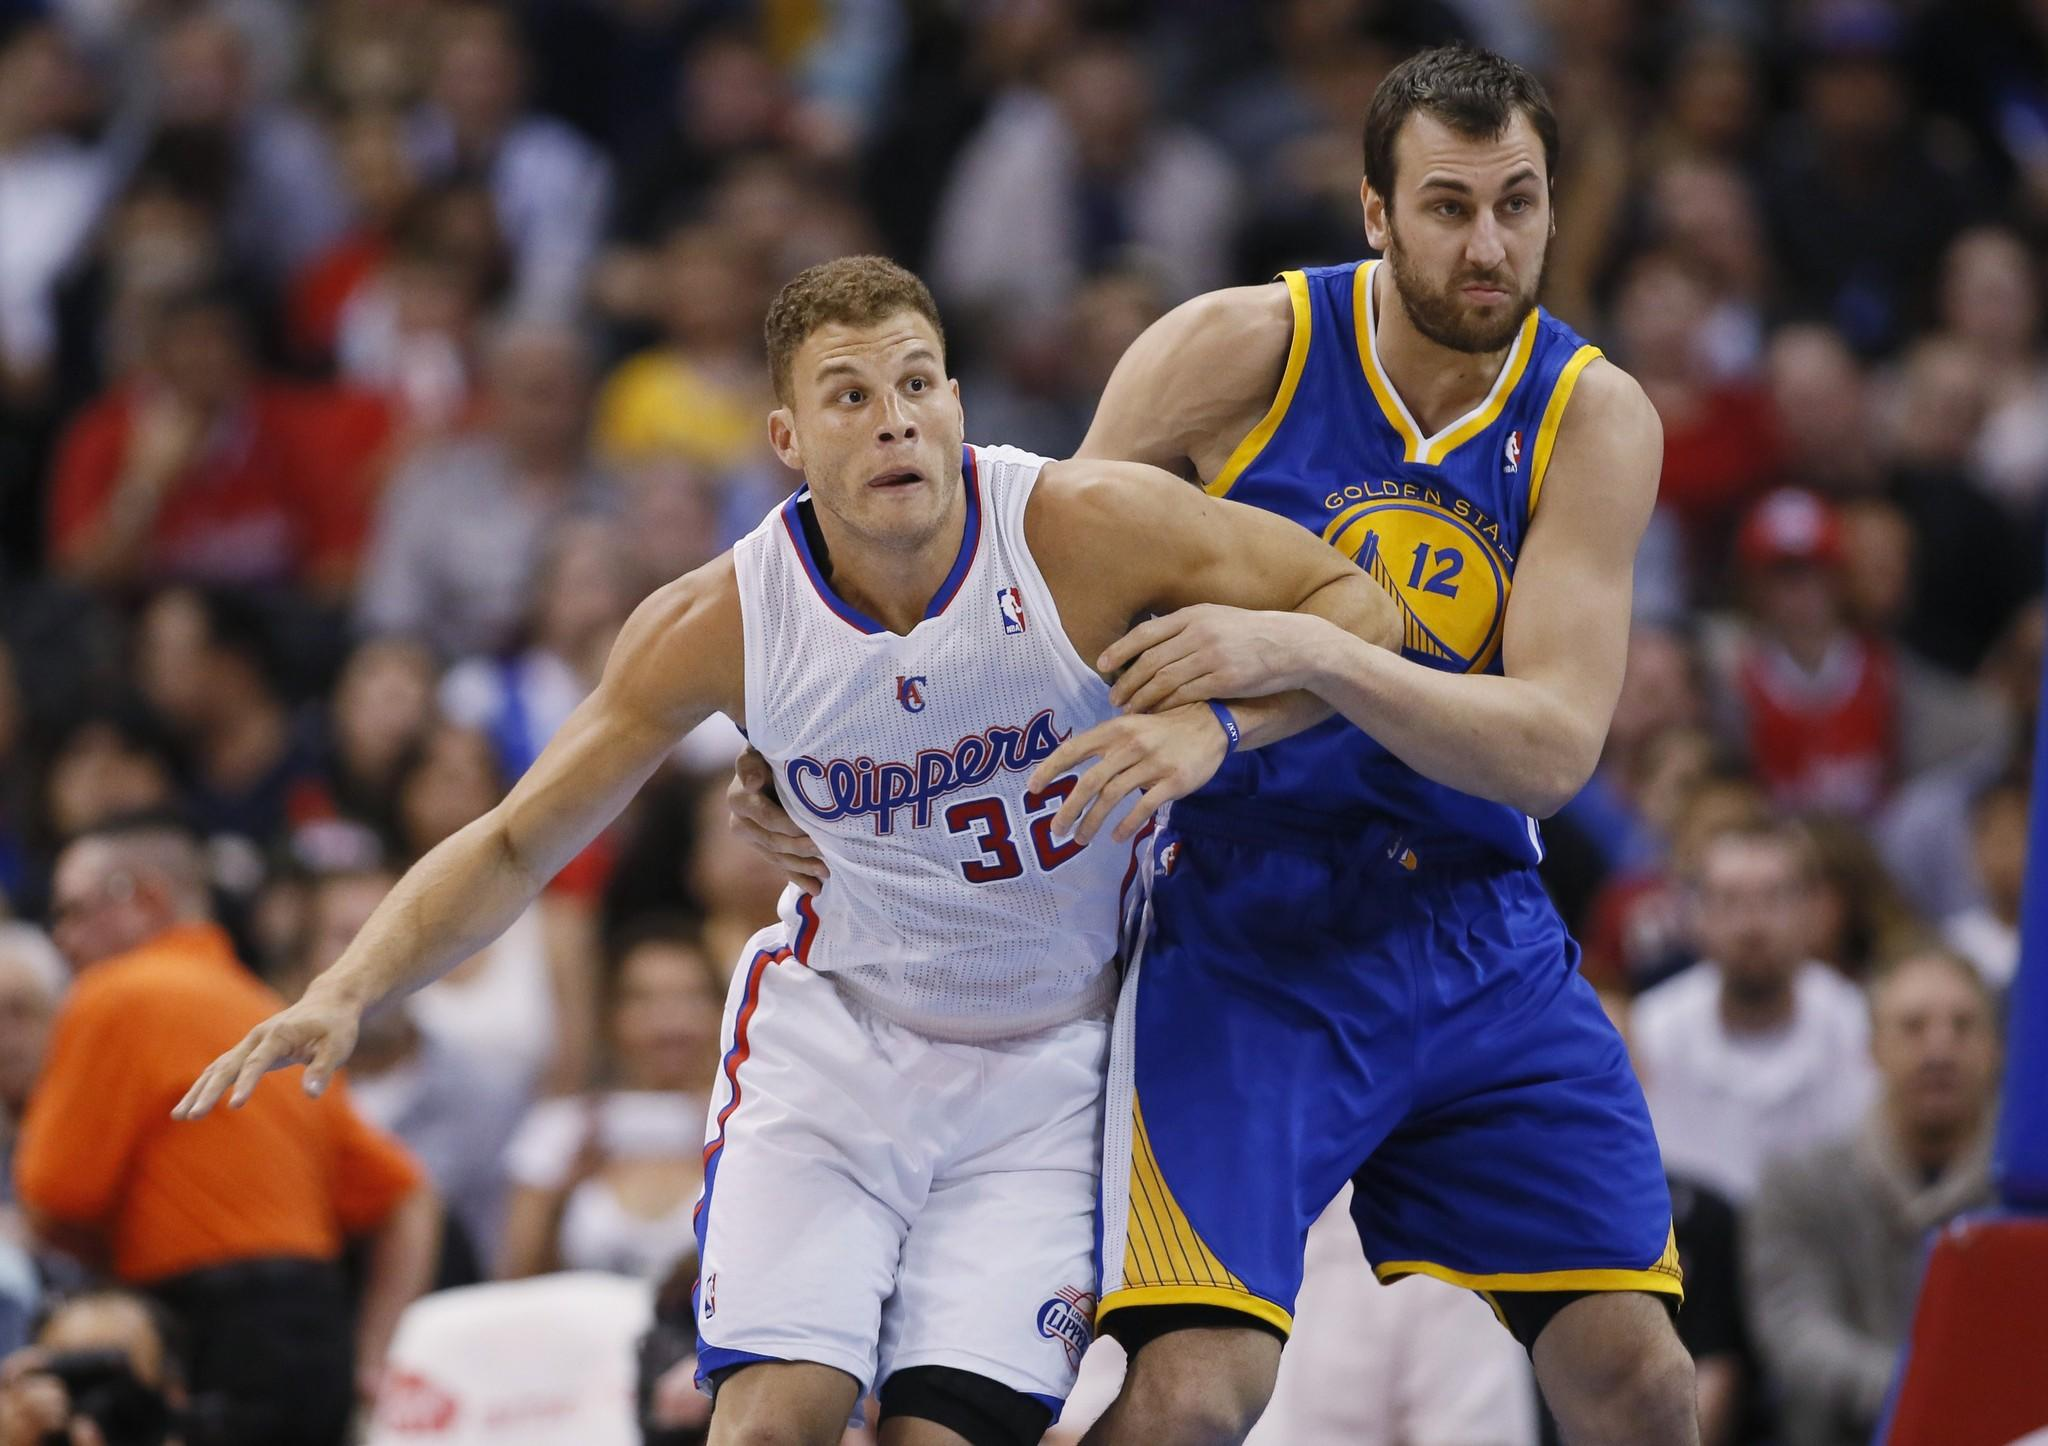 Clippers power forward Blake Griffin, left, battles for position with Golden State Warriors center Andrew Bogut during the first half of Wednesday's game at Staples Center.